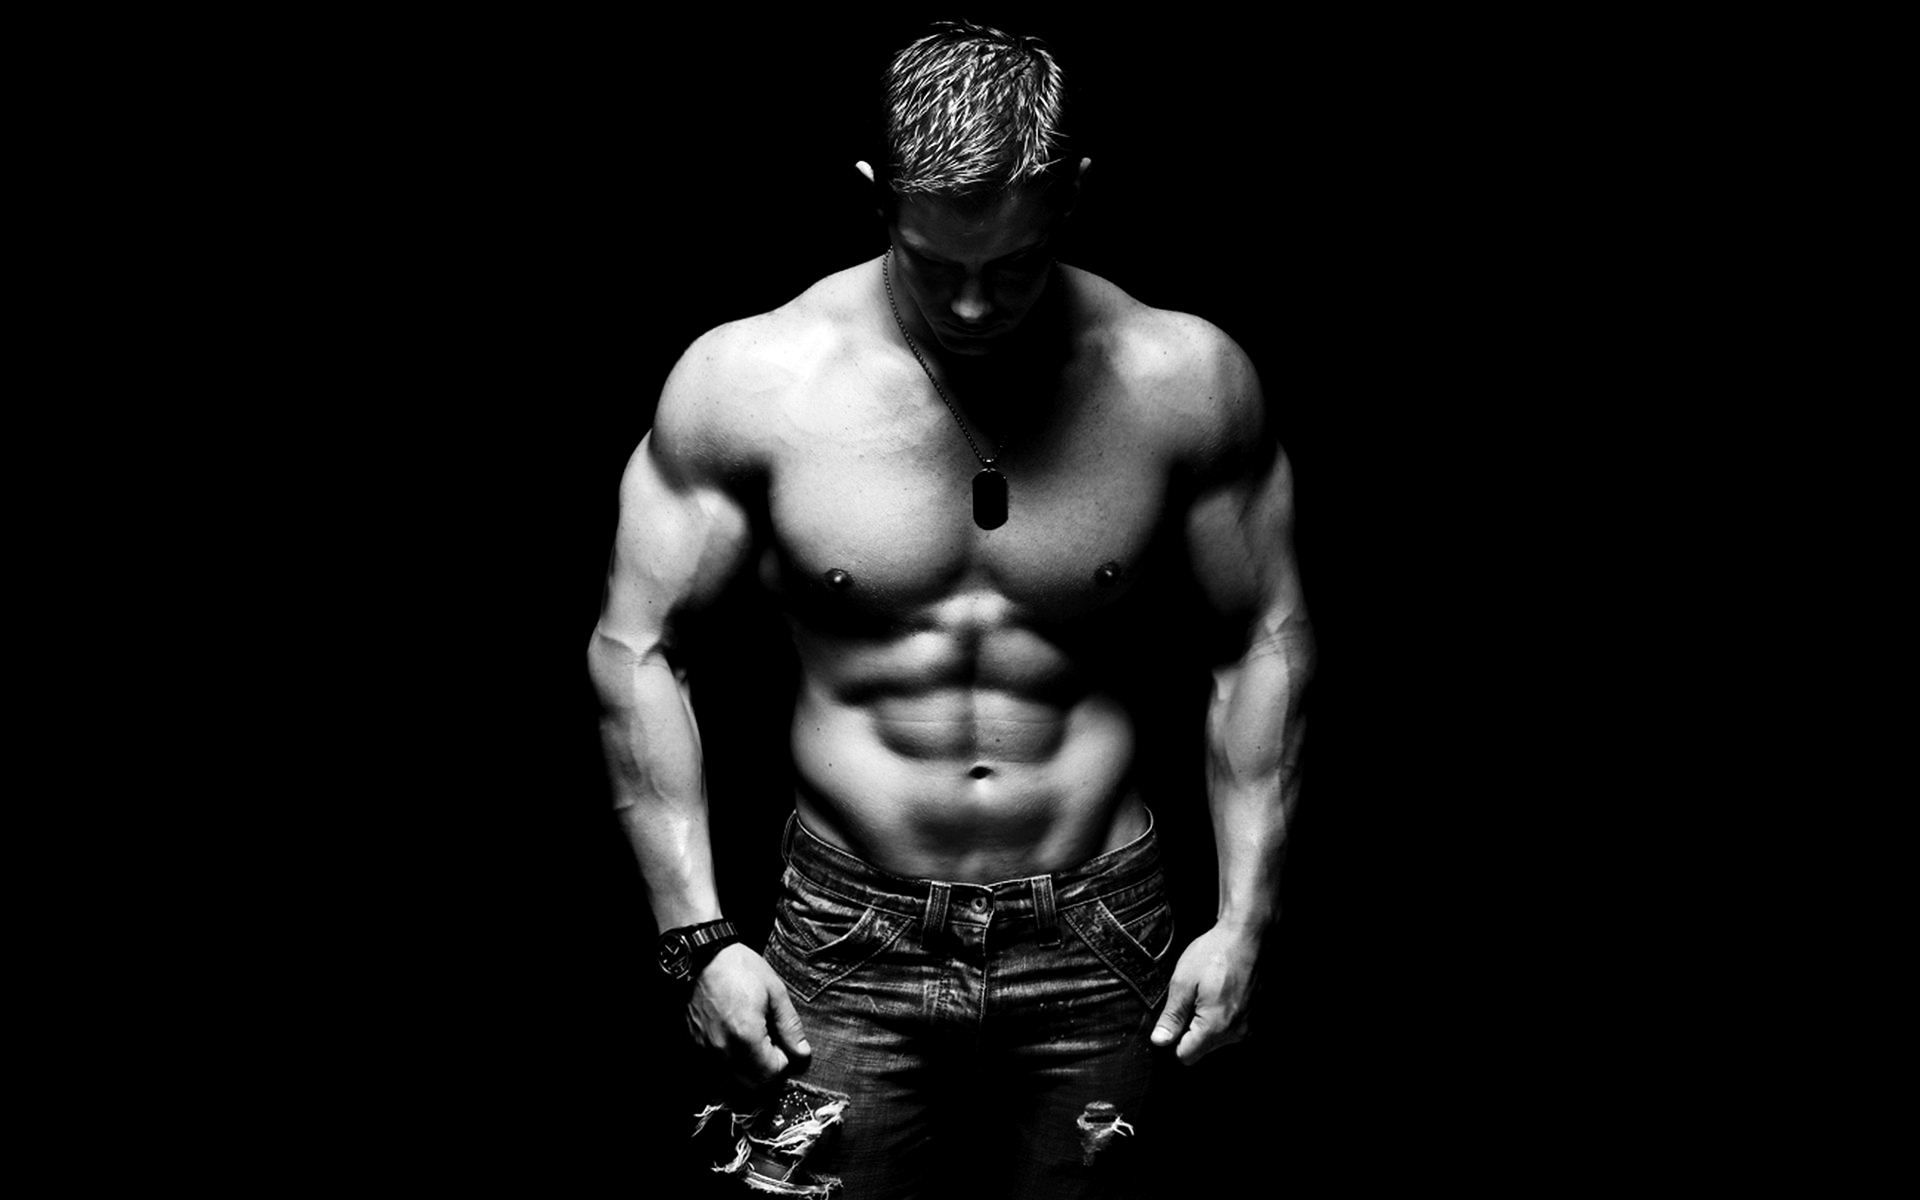 1920x1200 Body Building Wallpapers, Collection of Body Building Backgrounds ...